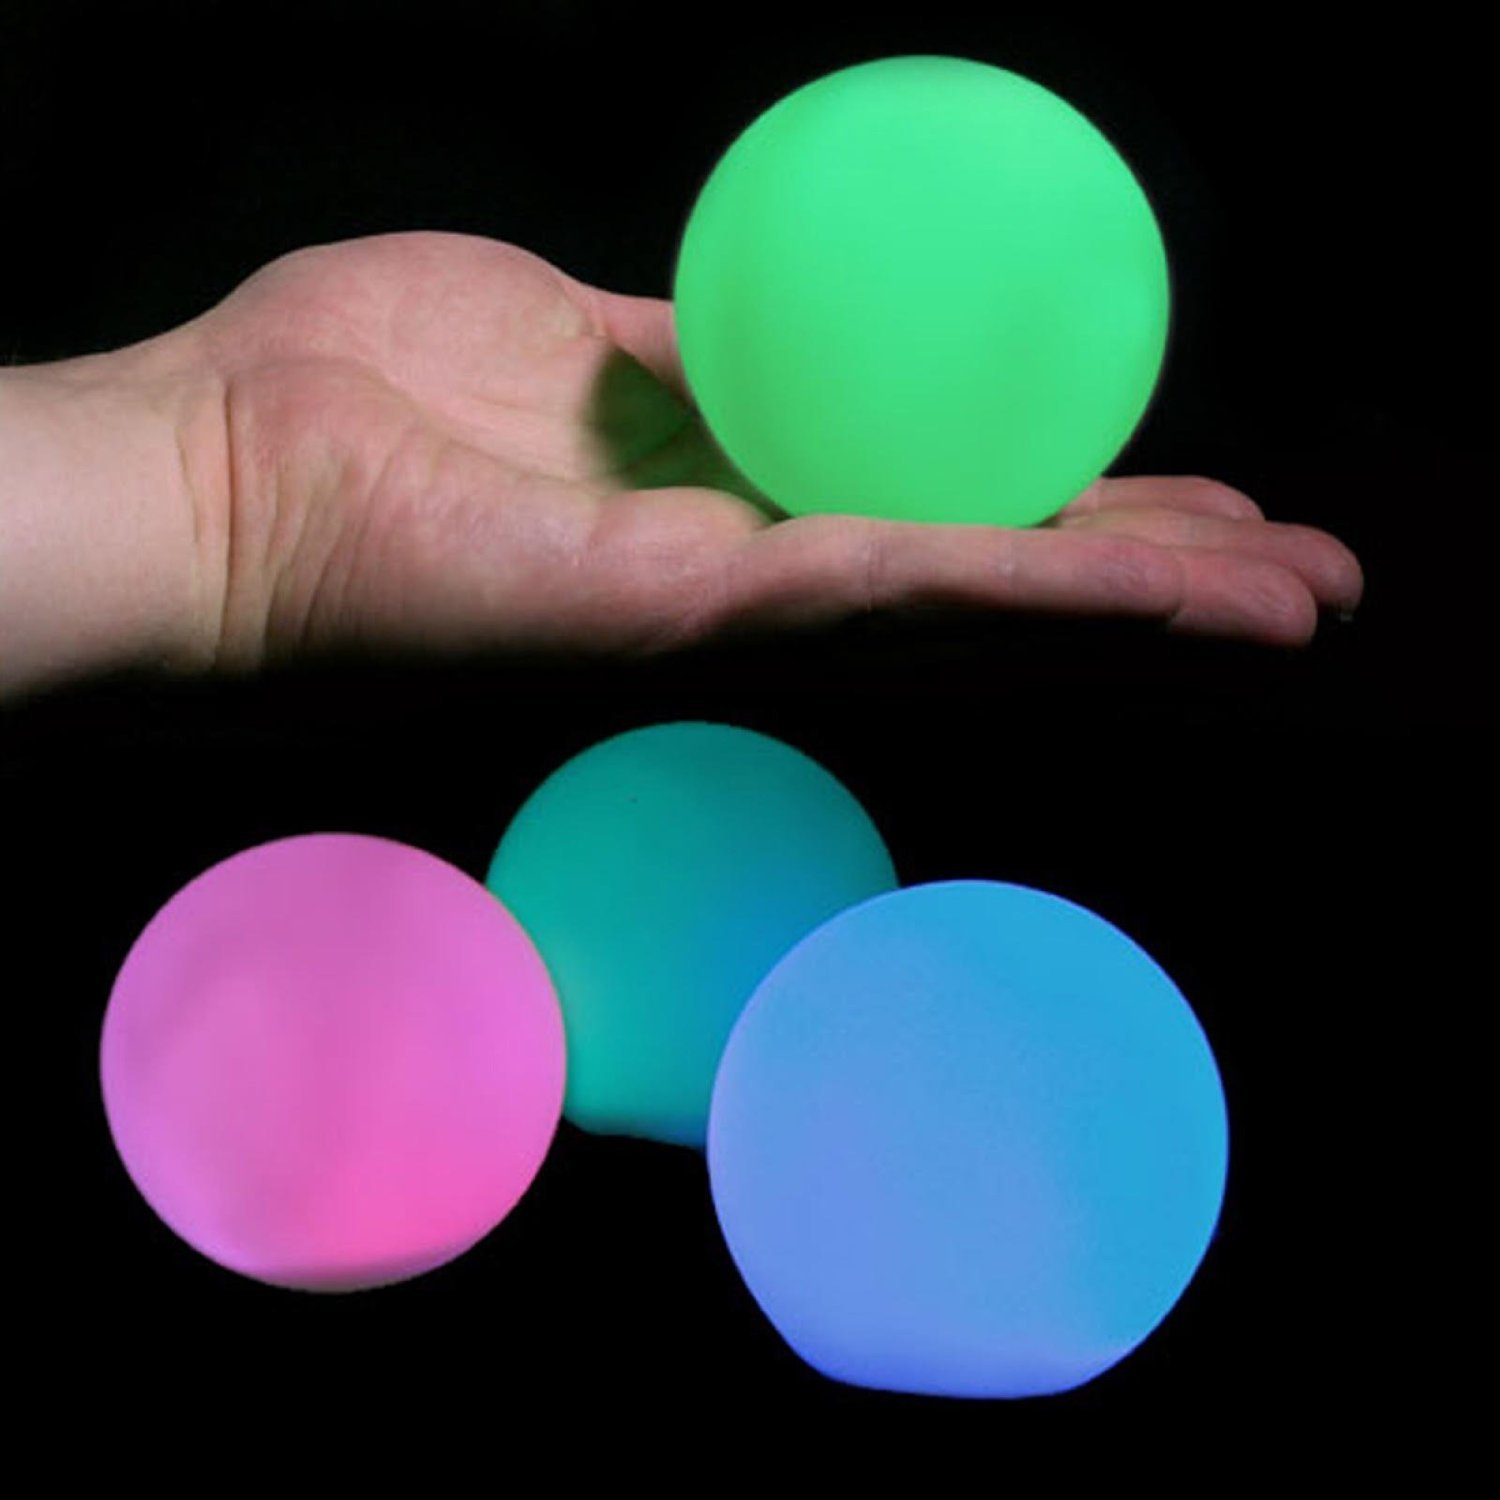 LED Ball Light 3-inch Rechargeable Mood Lights Multicolor Changing Indoor/Outdoor Lamp (Pack of 6) - Great Gift for Bday Parties, Holiday Home Decor